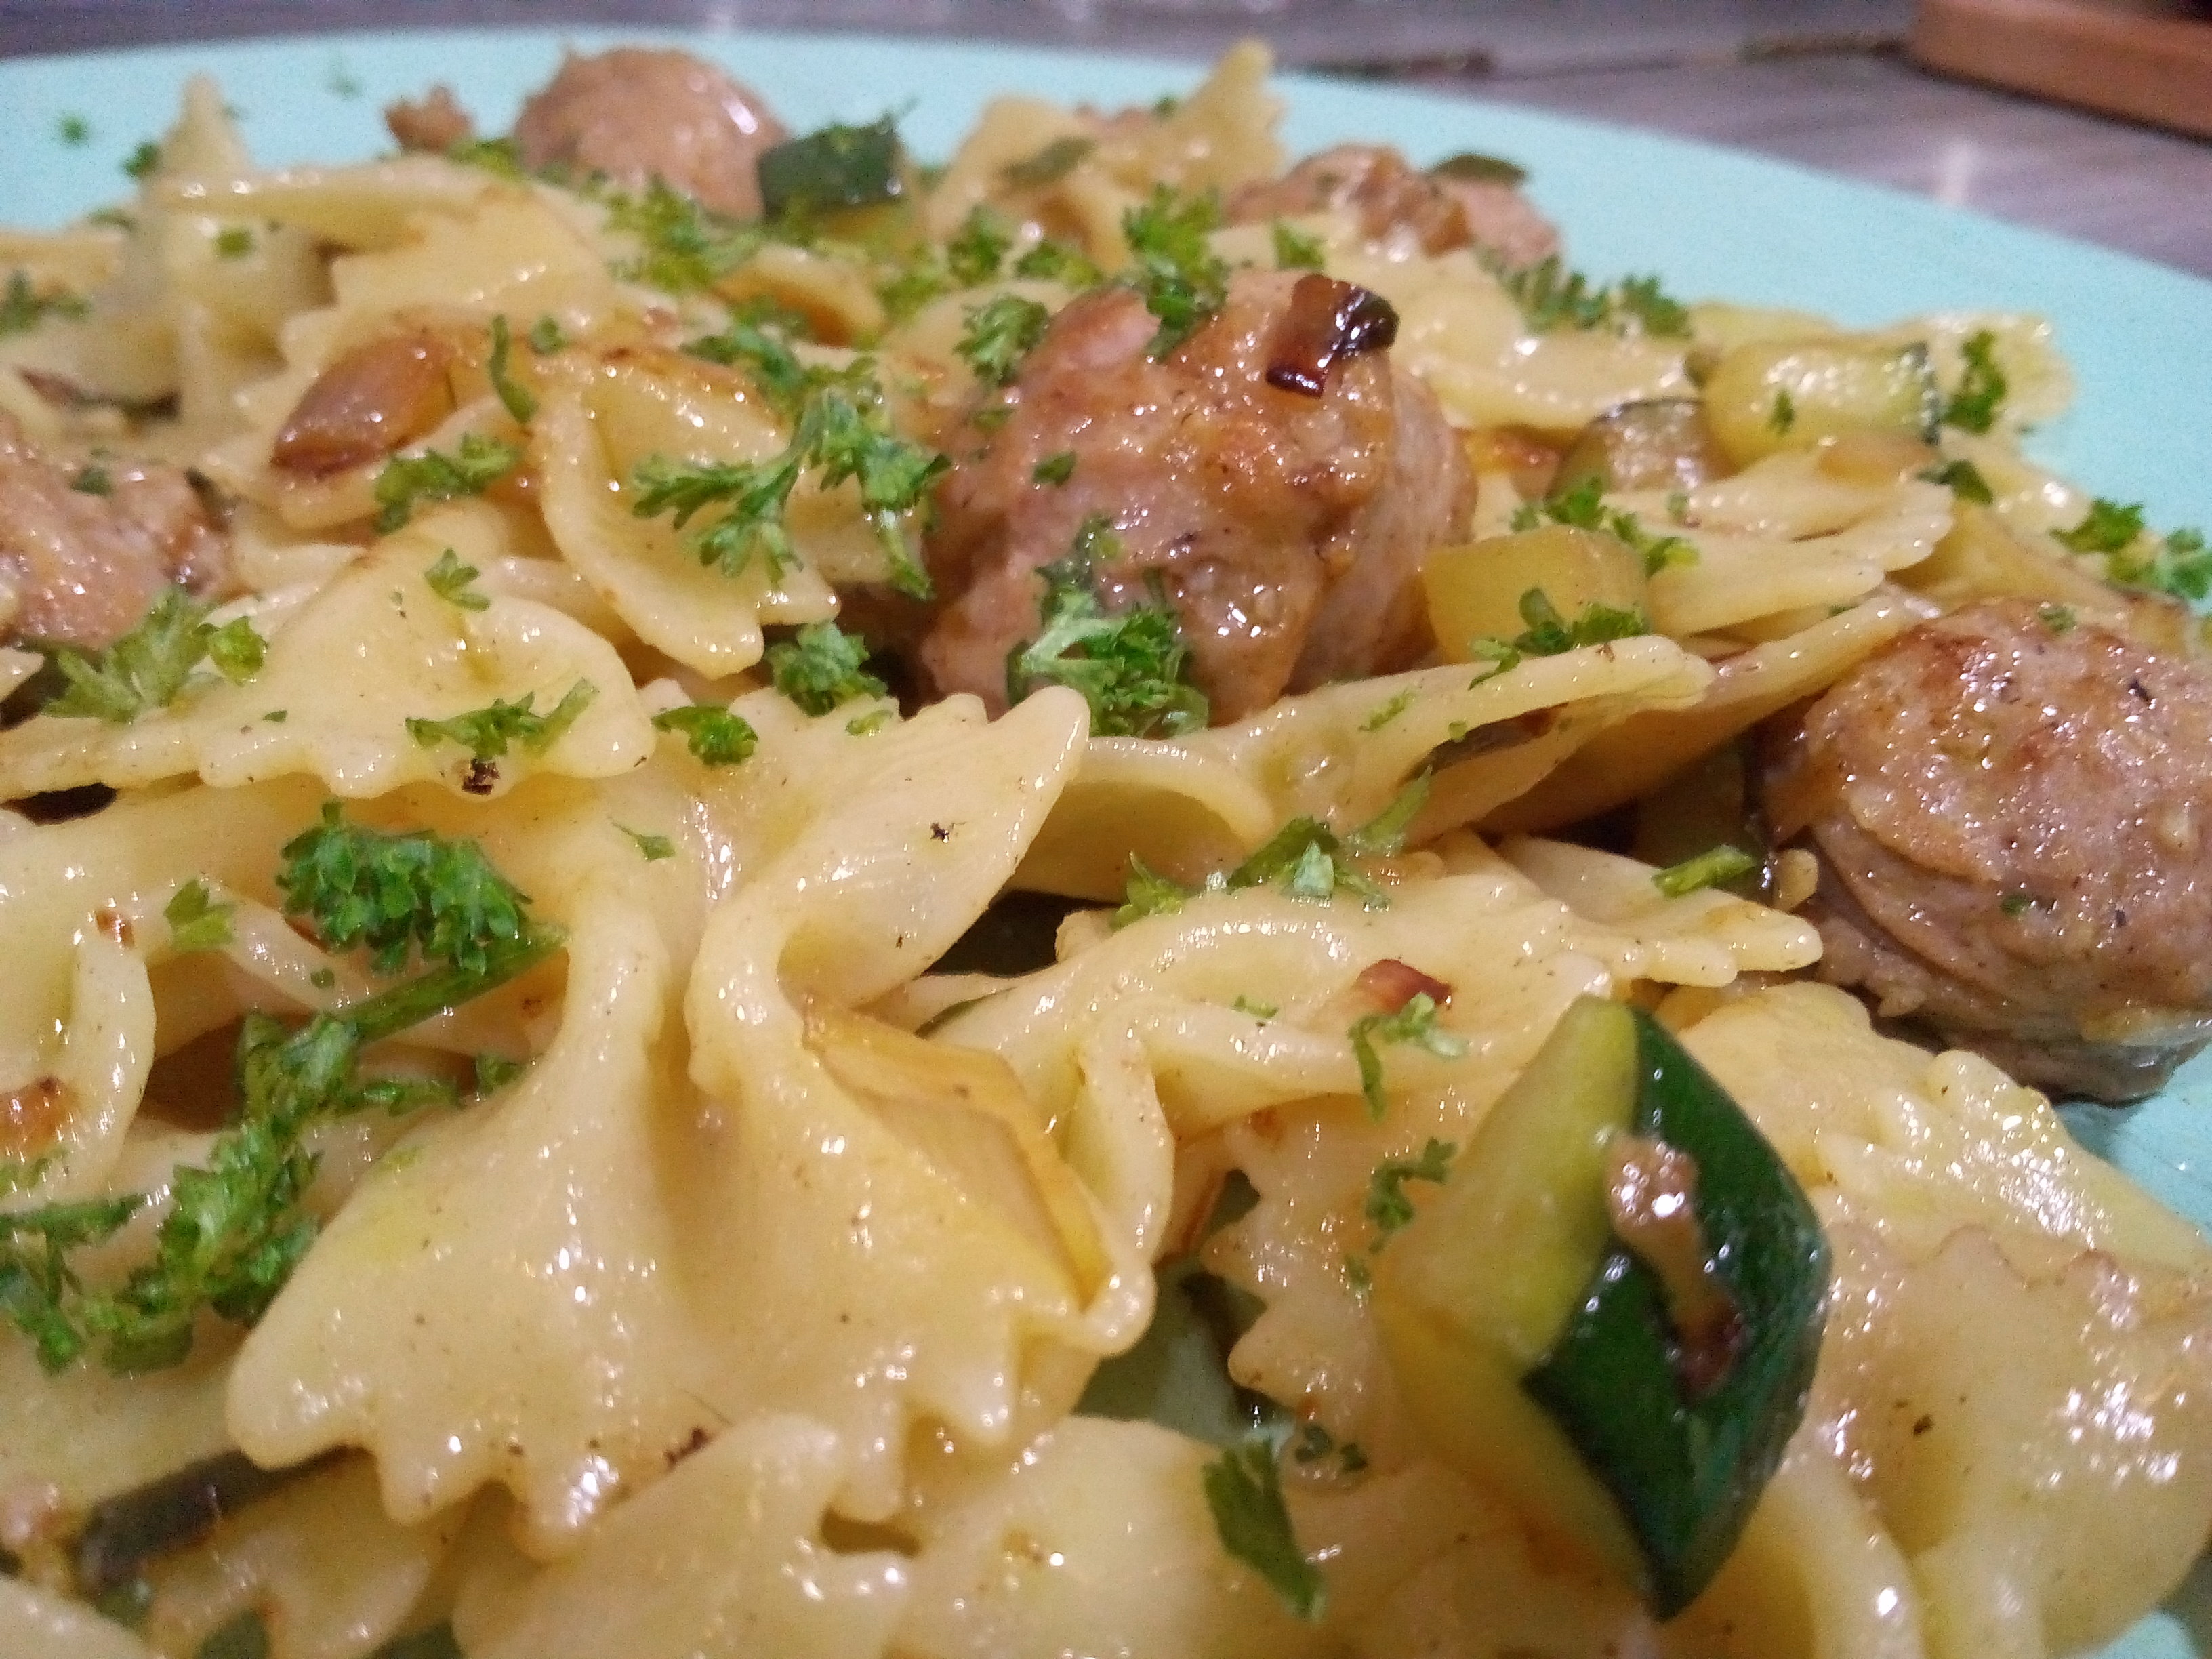 zucchini with sausage and pasta